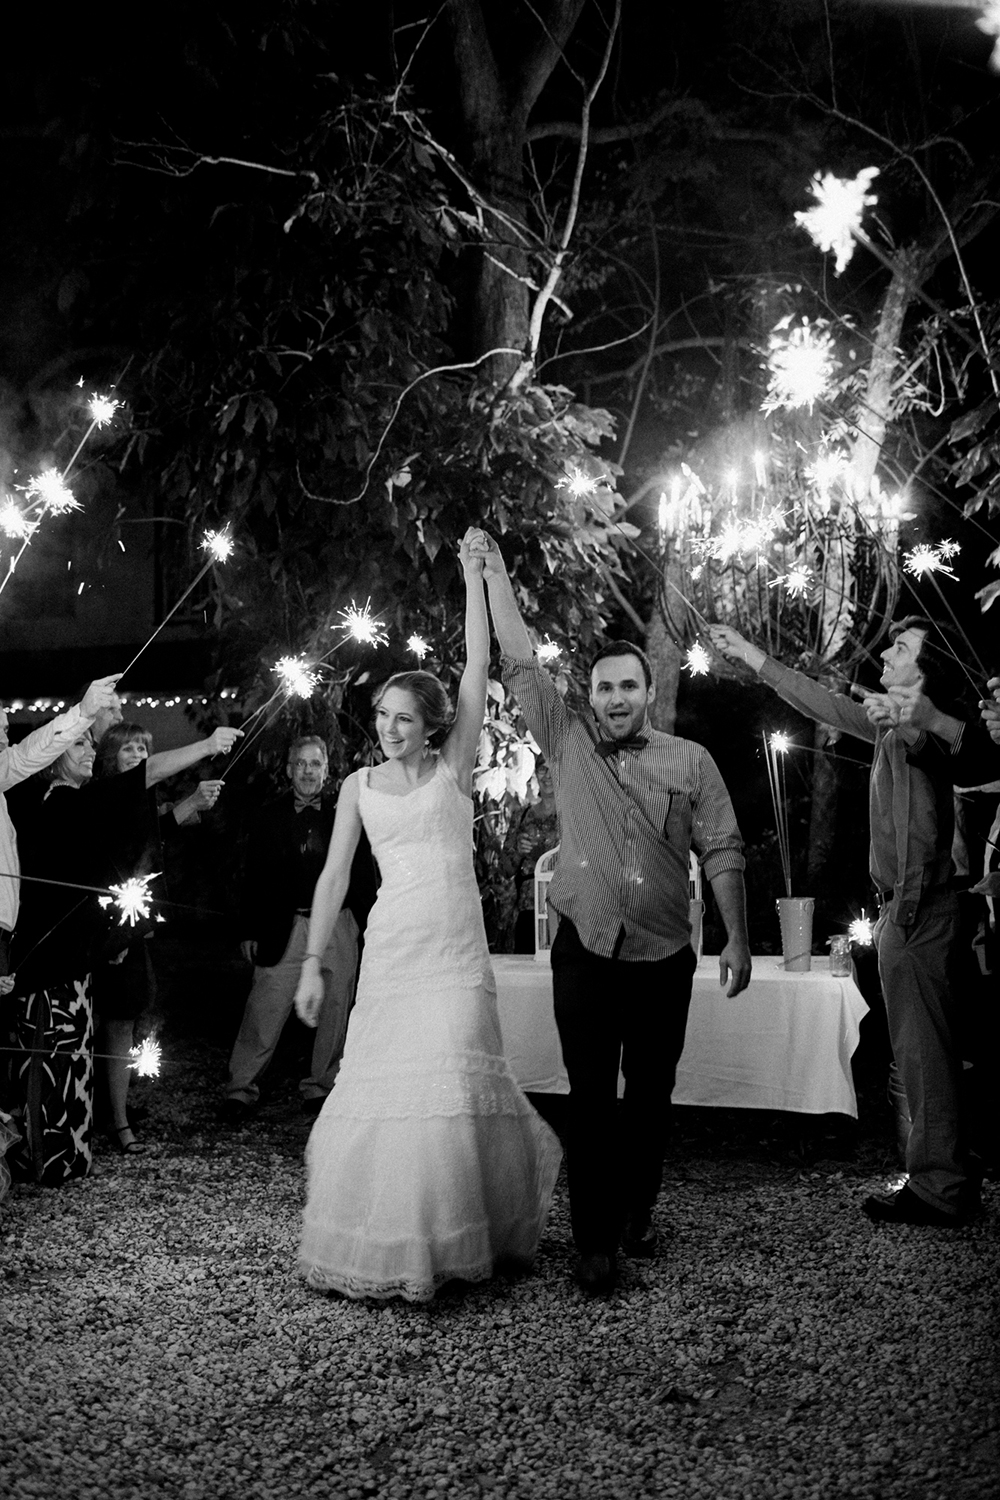 Waldos_Secret_Garden_Wedding-Finding_Light_Photography_Wedding-Florida_Wedding_Photographer-18.jpg